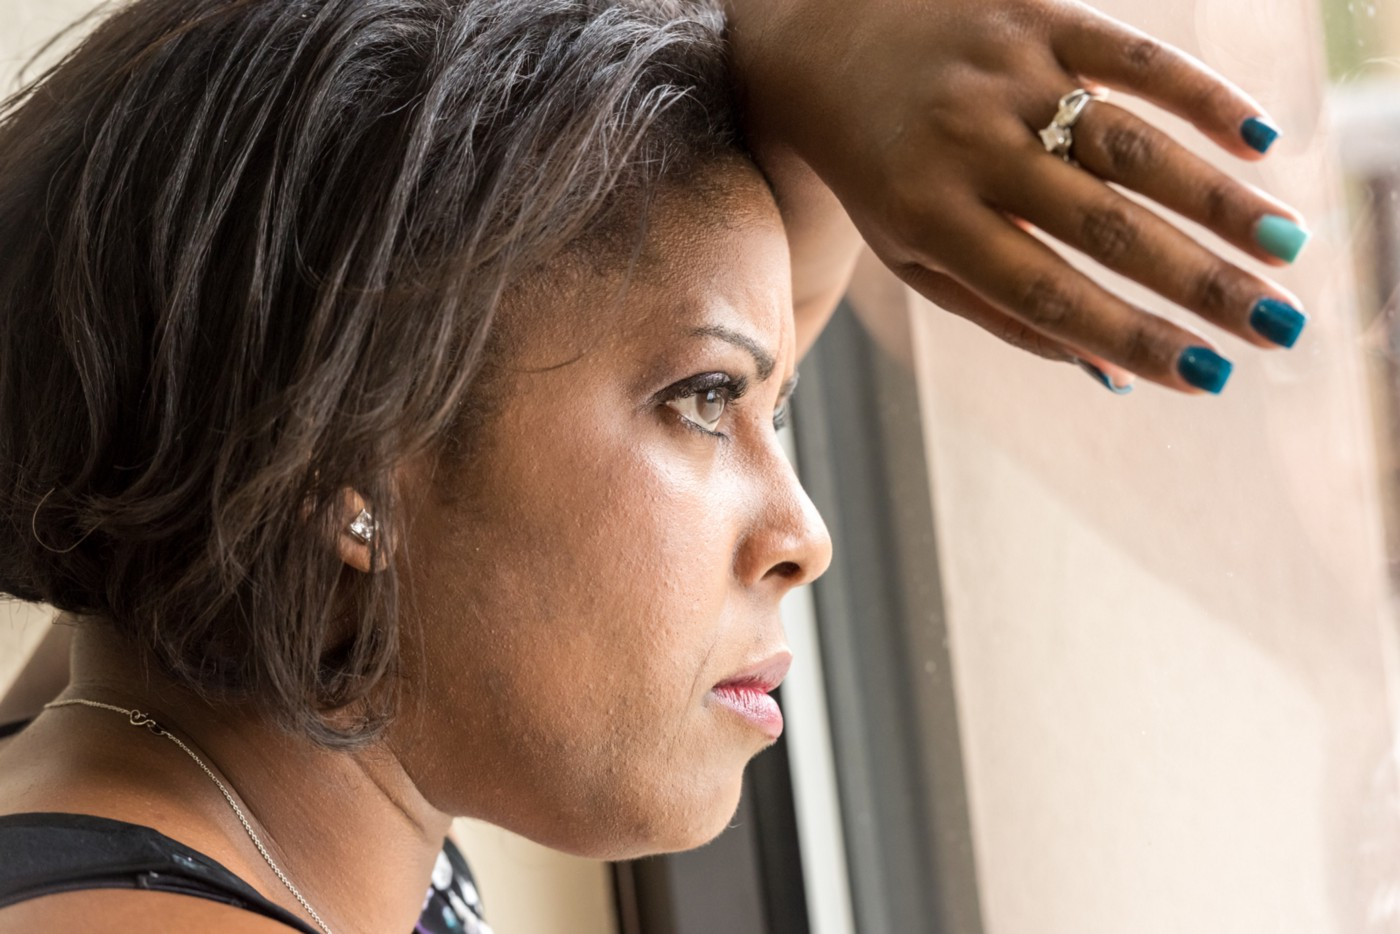 A closeup photo of a black woman leaning against a window and she looks out with a determined expression.